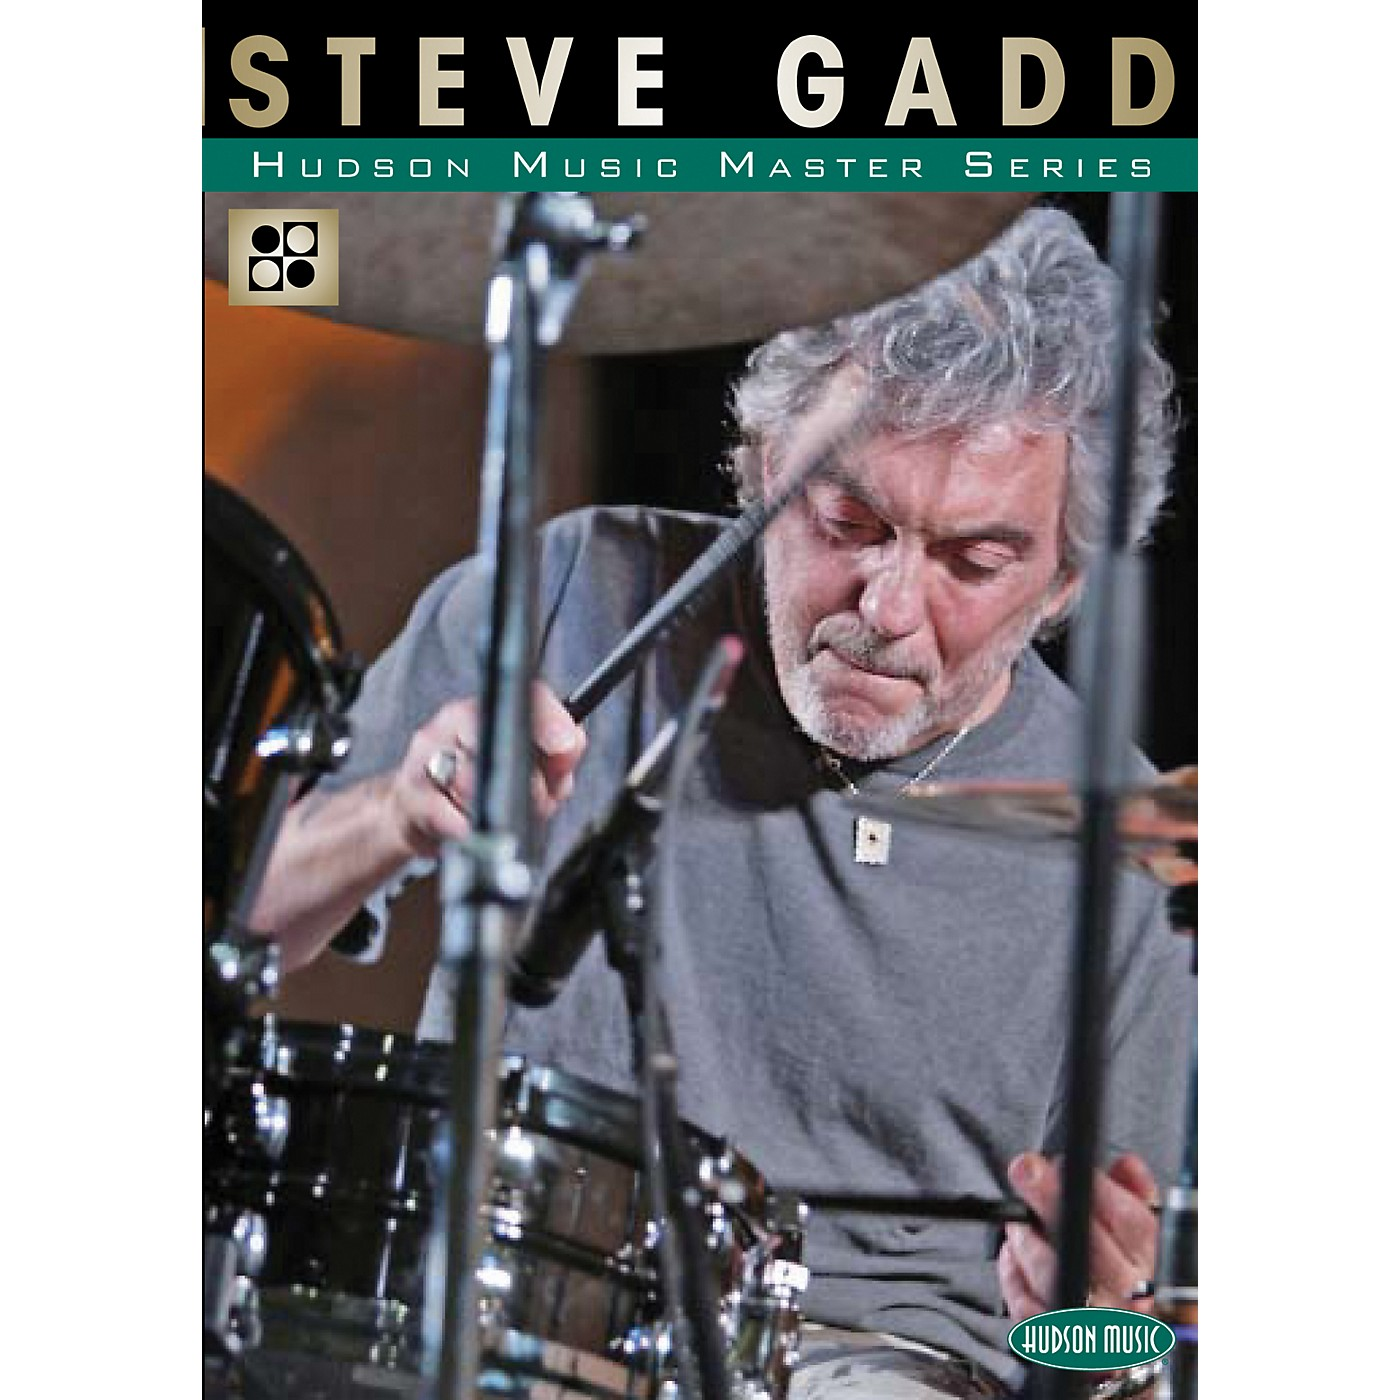 Hudson Music The Master Series - Master Classes by Master Drummers DVD with Steve Gadd thumbnail